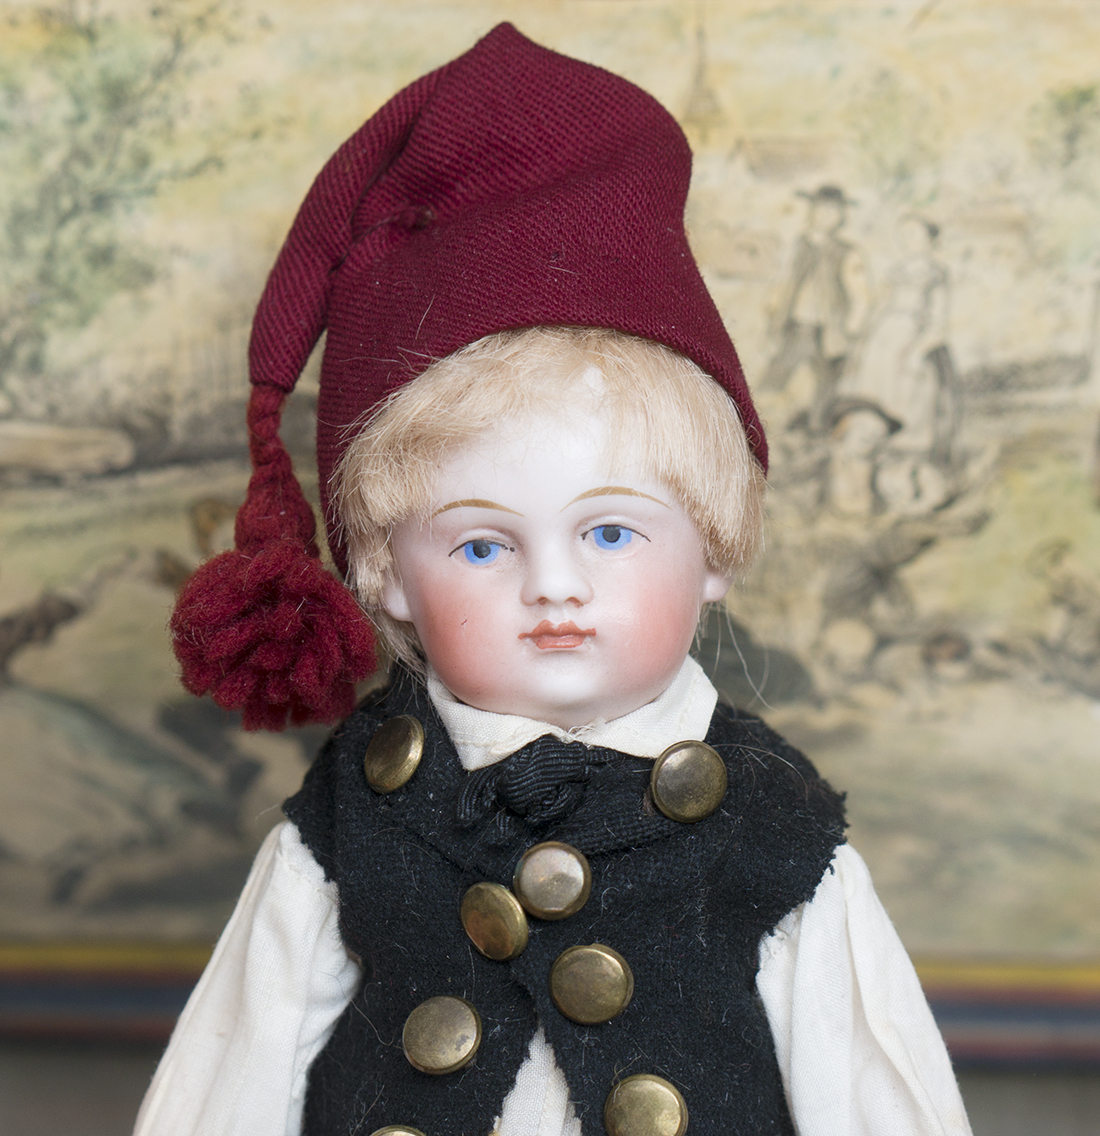 All Original Bisque Doll